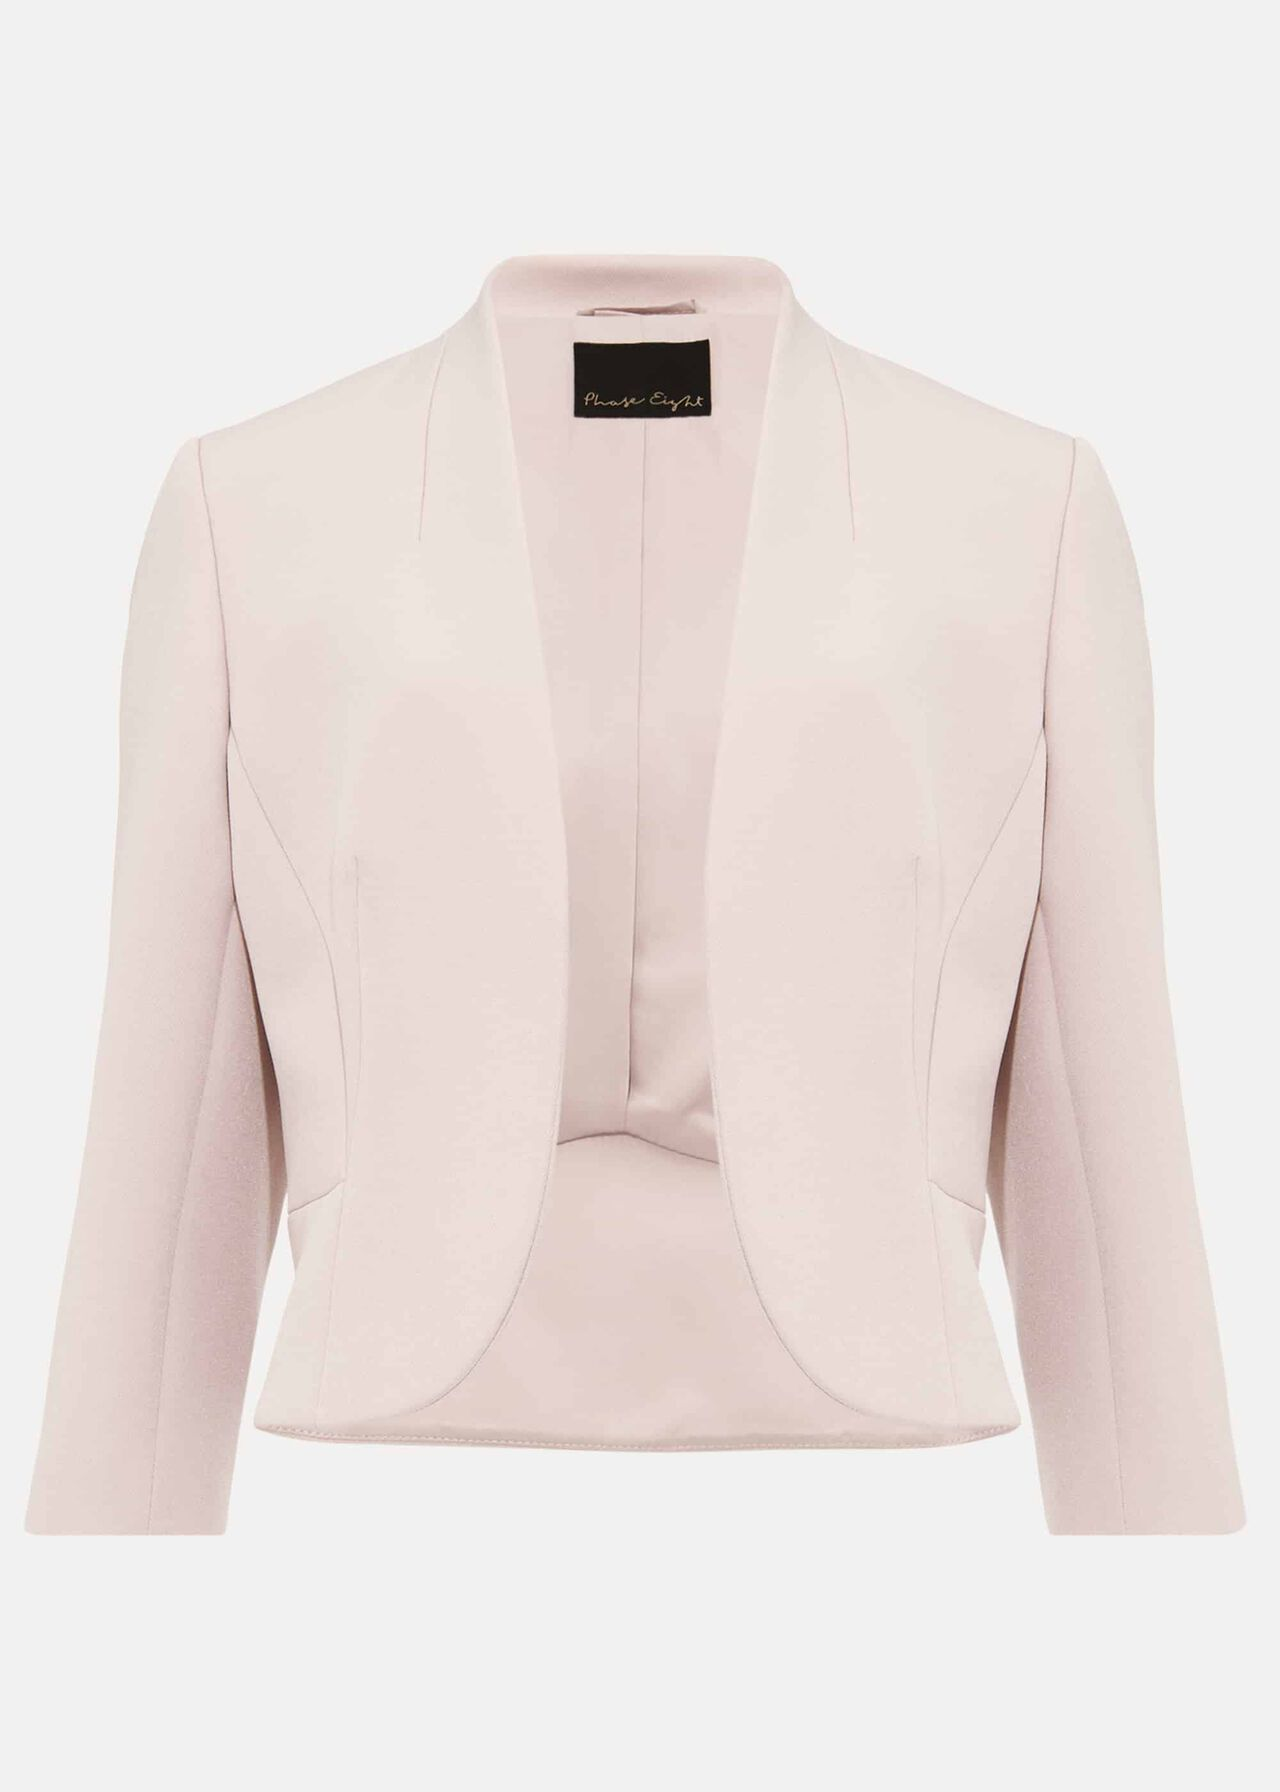 Taylor Occasion Jacket